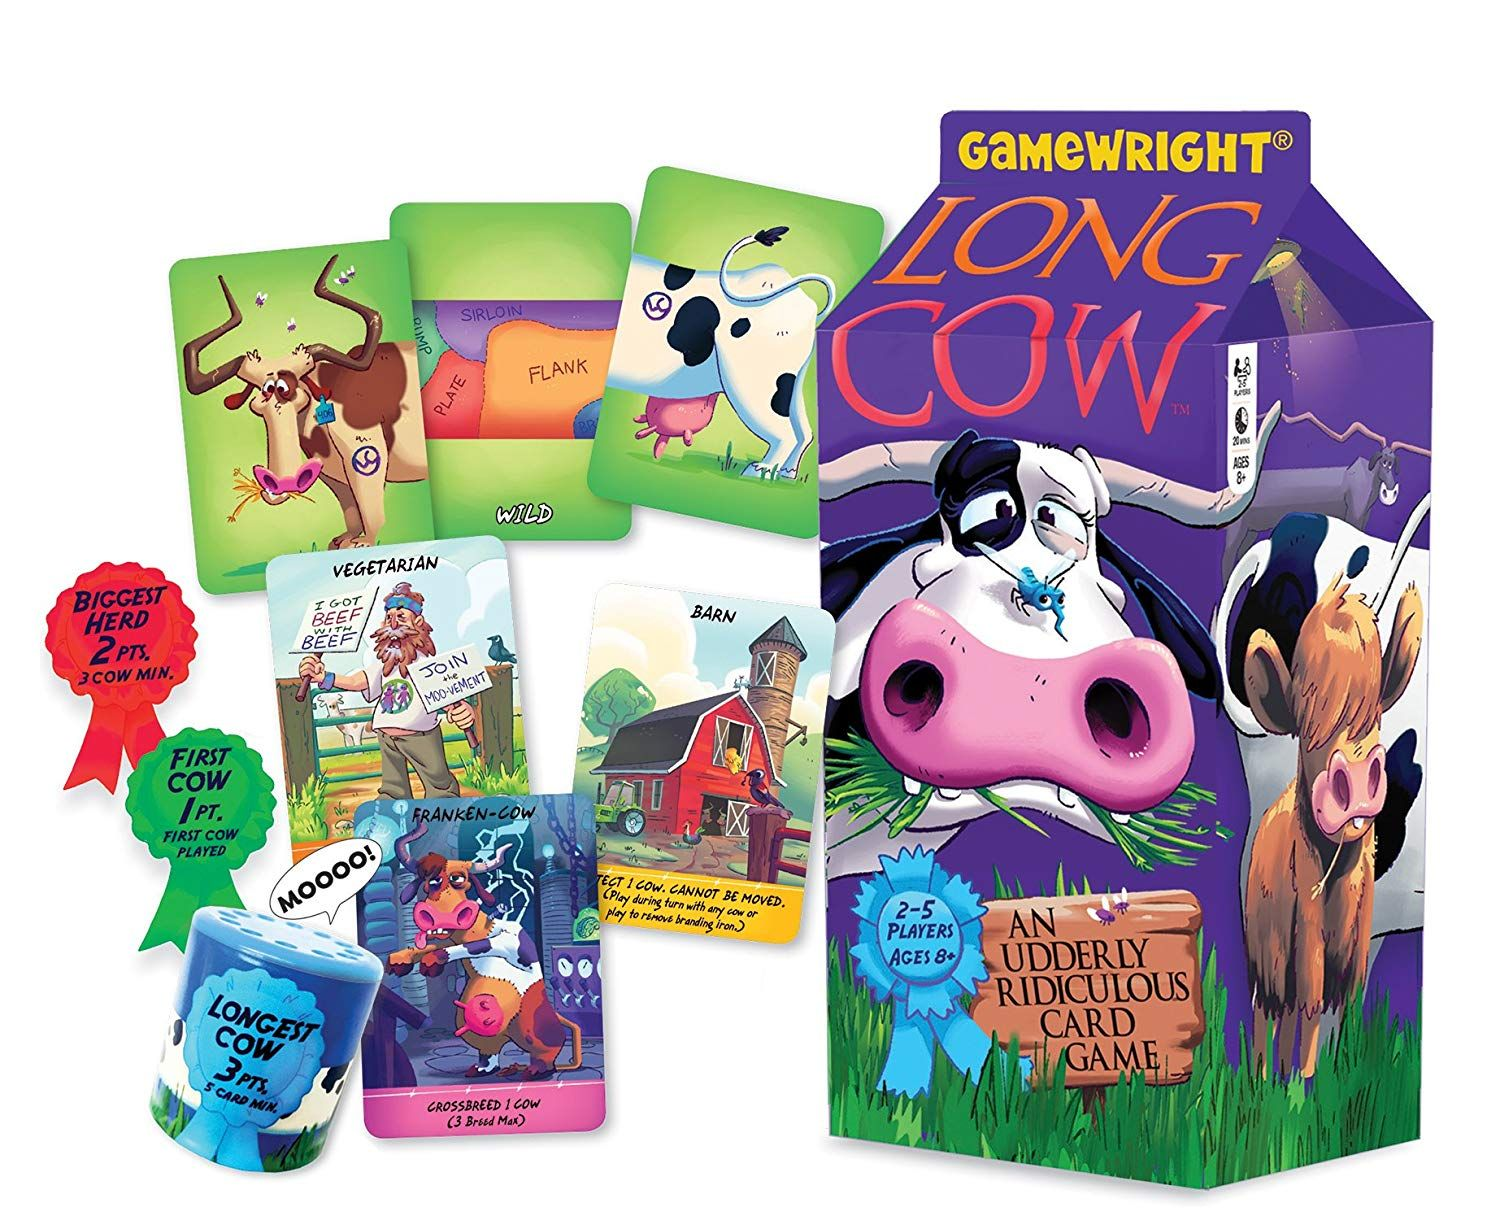 Long Cow card game